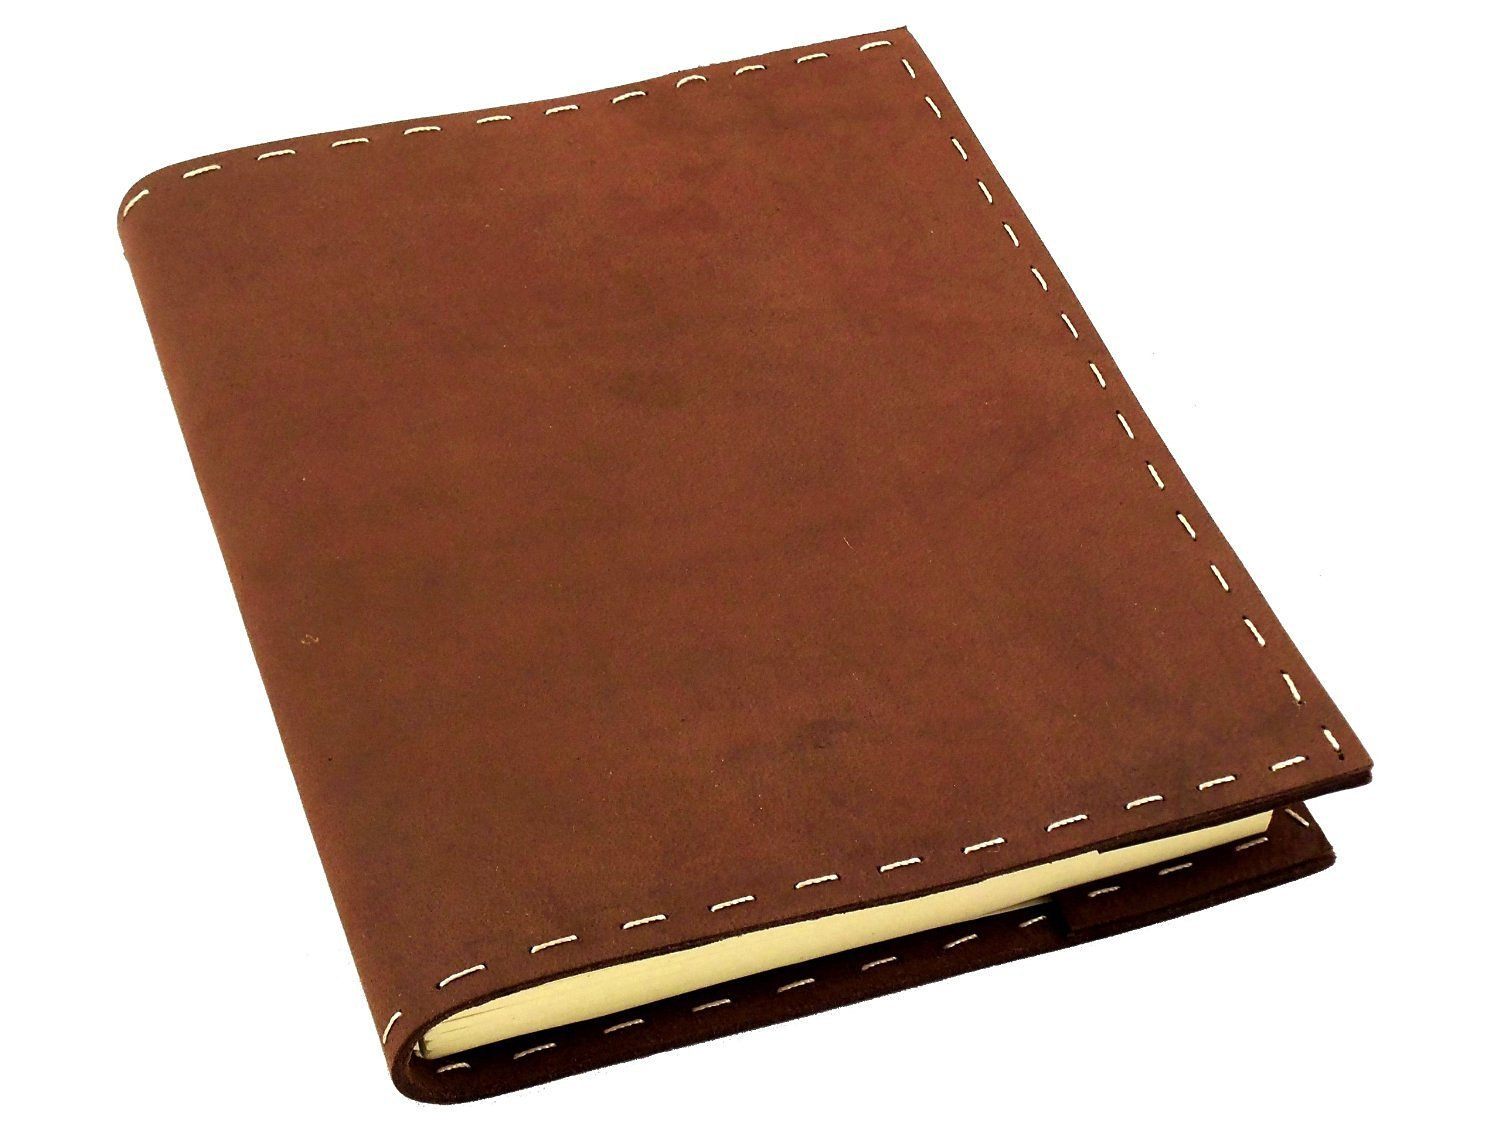 Genuine Leather Refillable Journal / Personal Diary / Writing Notebook / Scrap Book/ Doodle Book / Travel Book Handmade By Artisans Of India